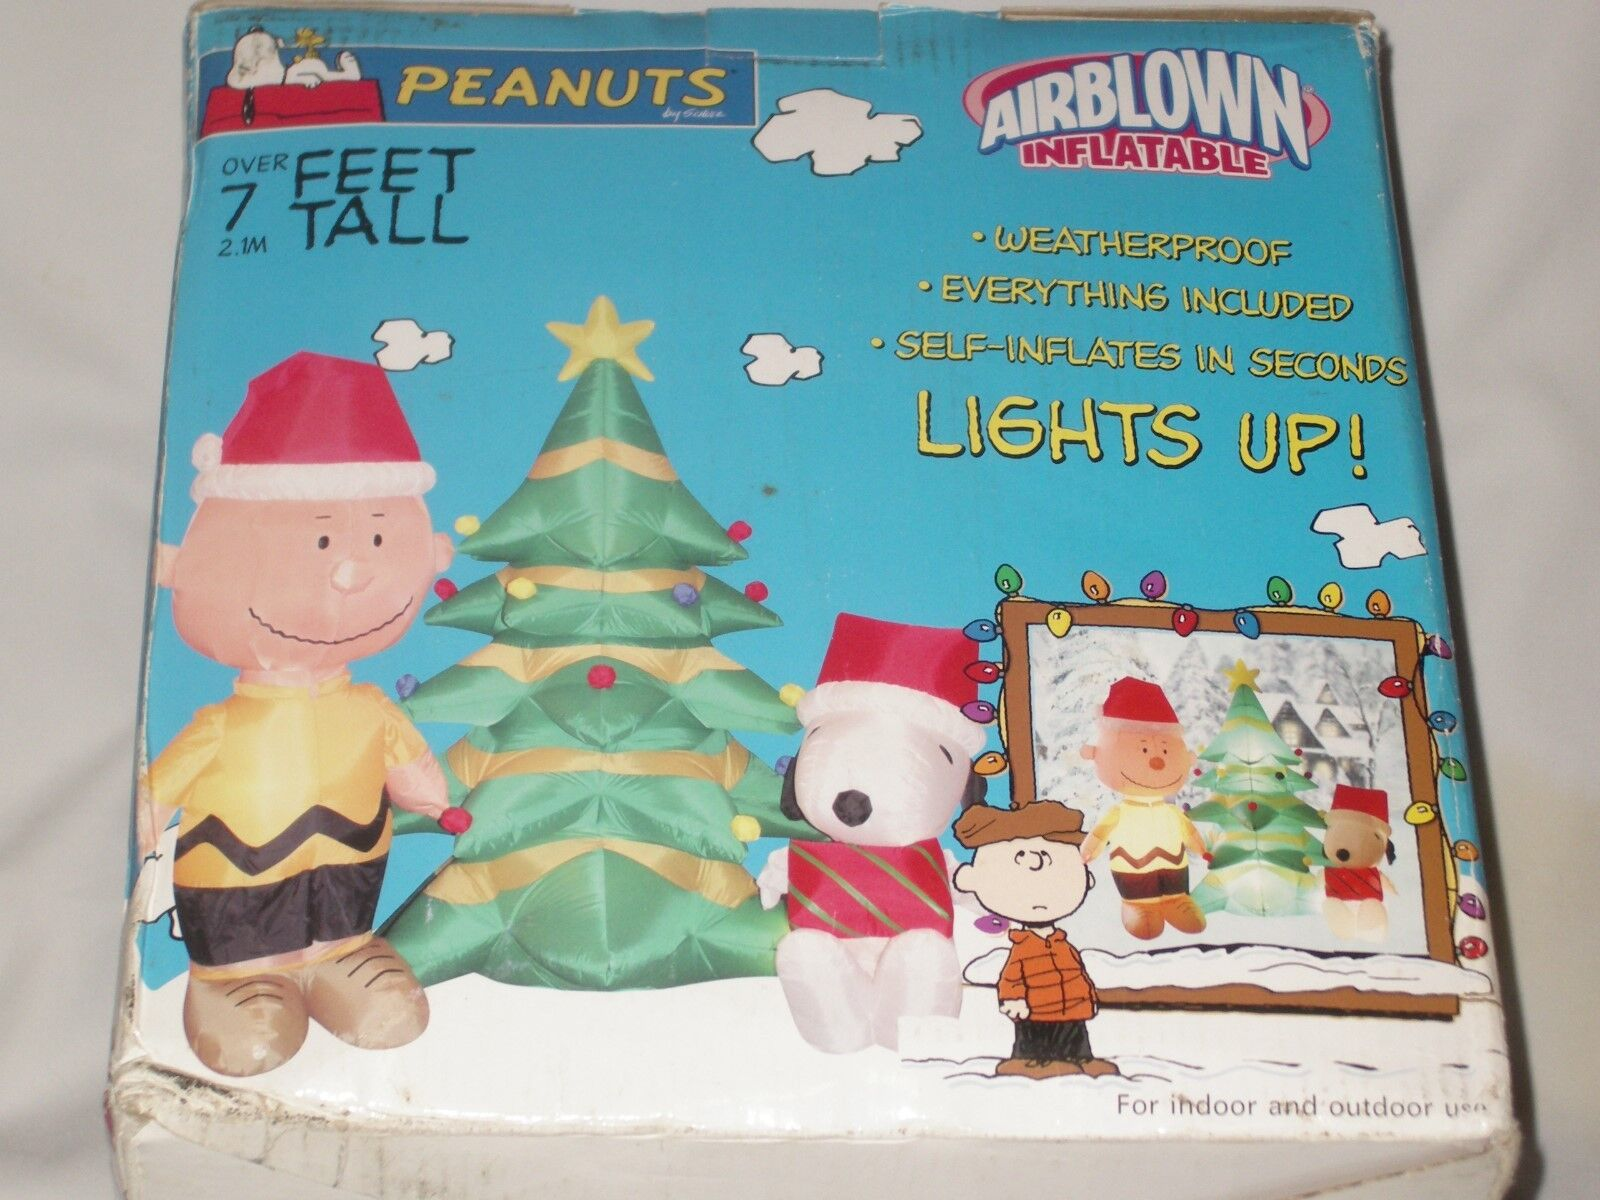 Over 7' Lighted Peanuts Charlie Brown & Snoopy Christmas Airblown Inflatable